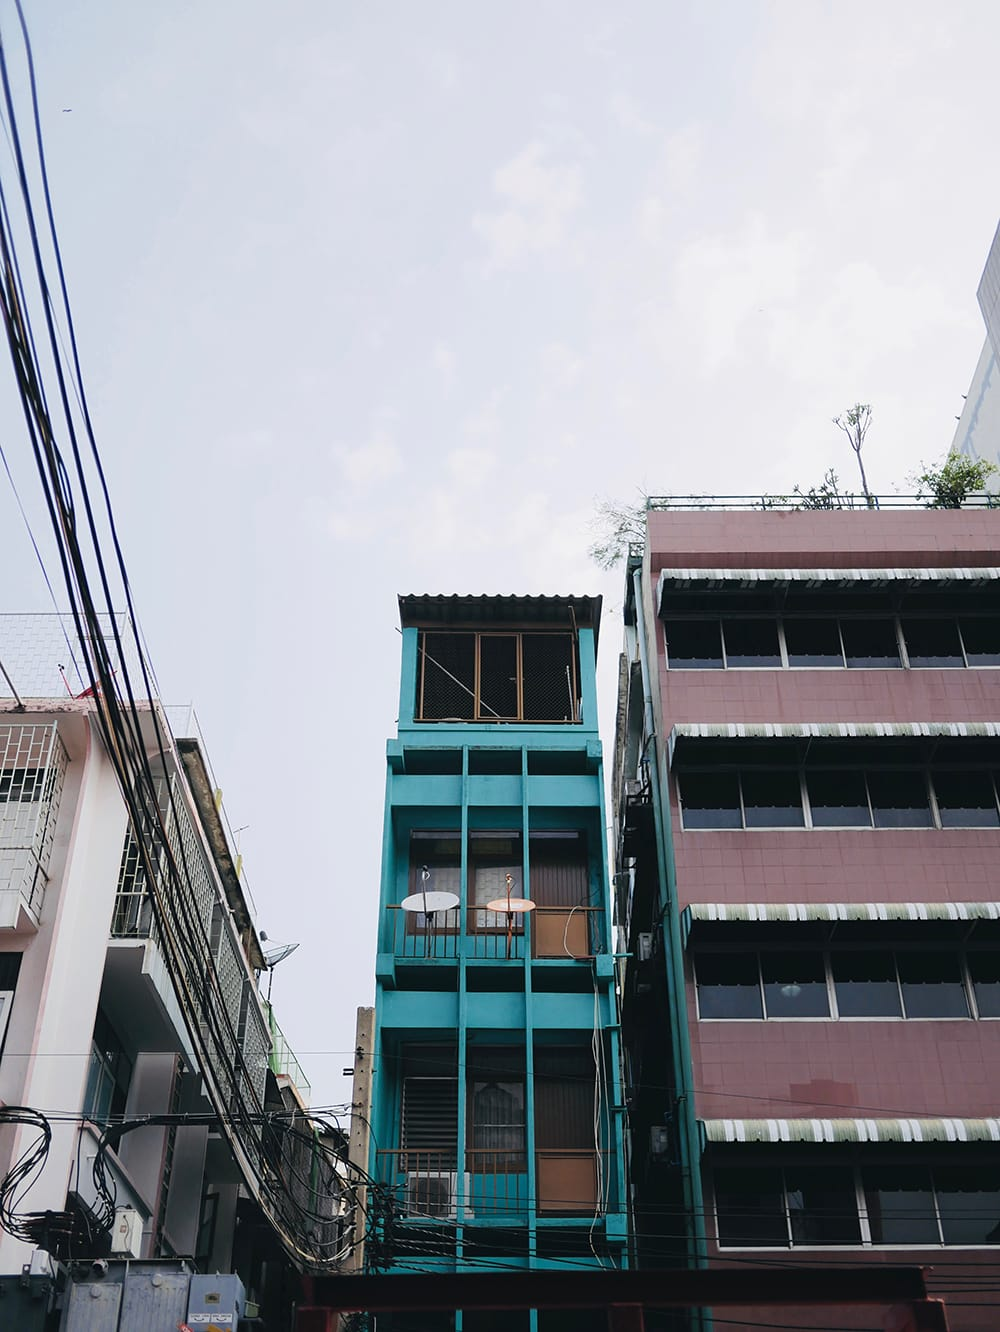 A very narrow block of flats. Bangkok